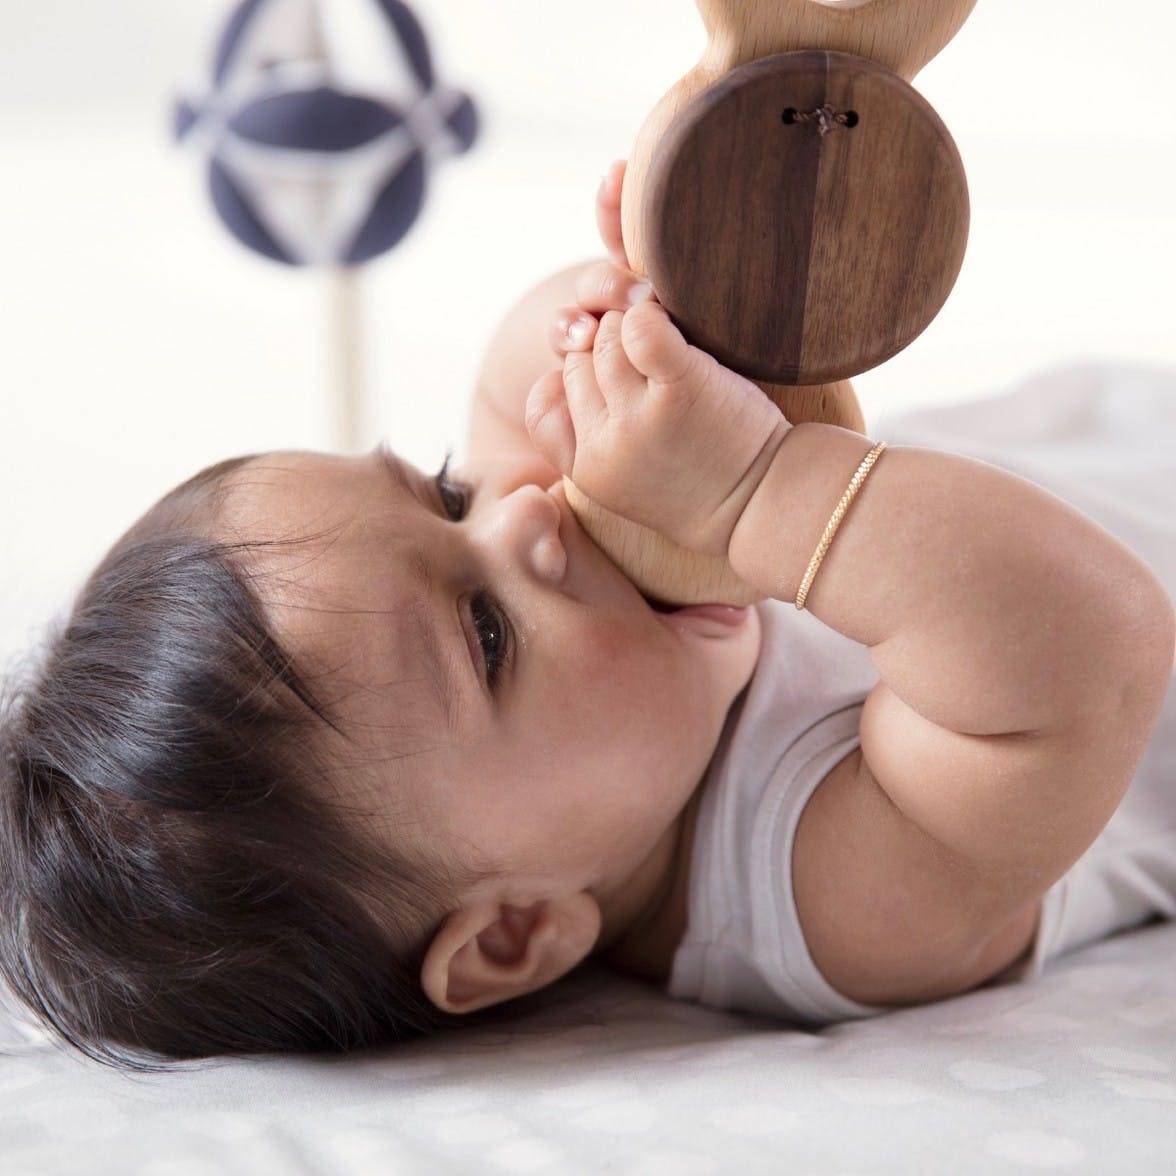 A baby laying on its back chewing on the Batting Ring from the Play Gym by Lovevery